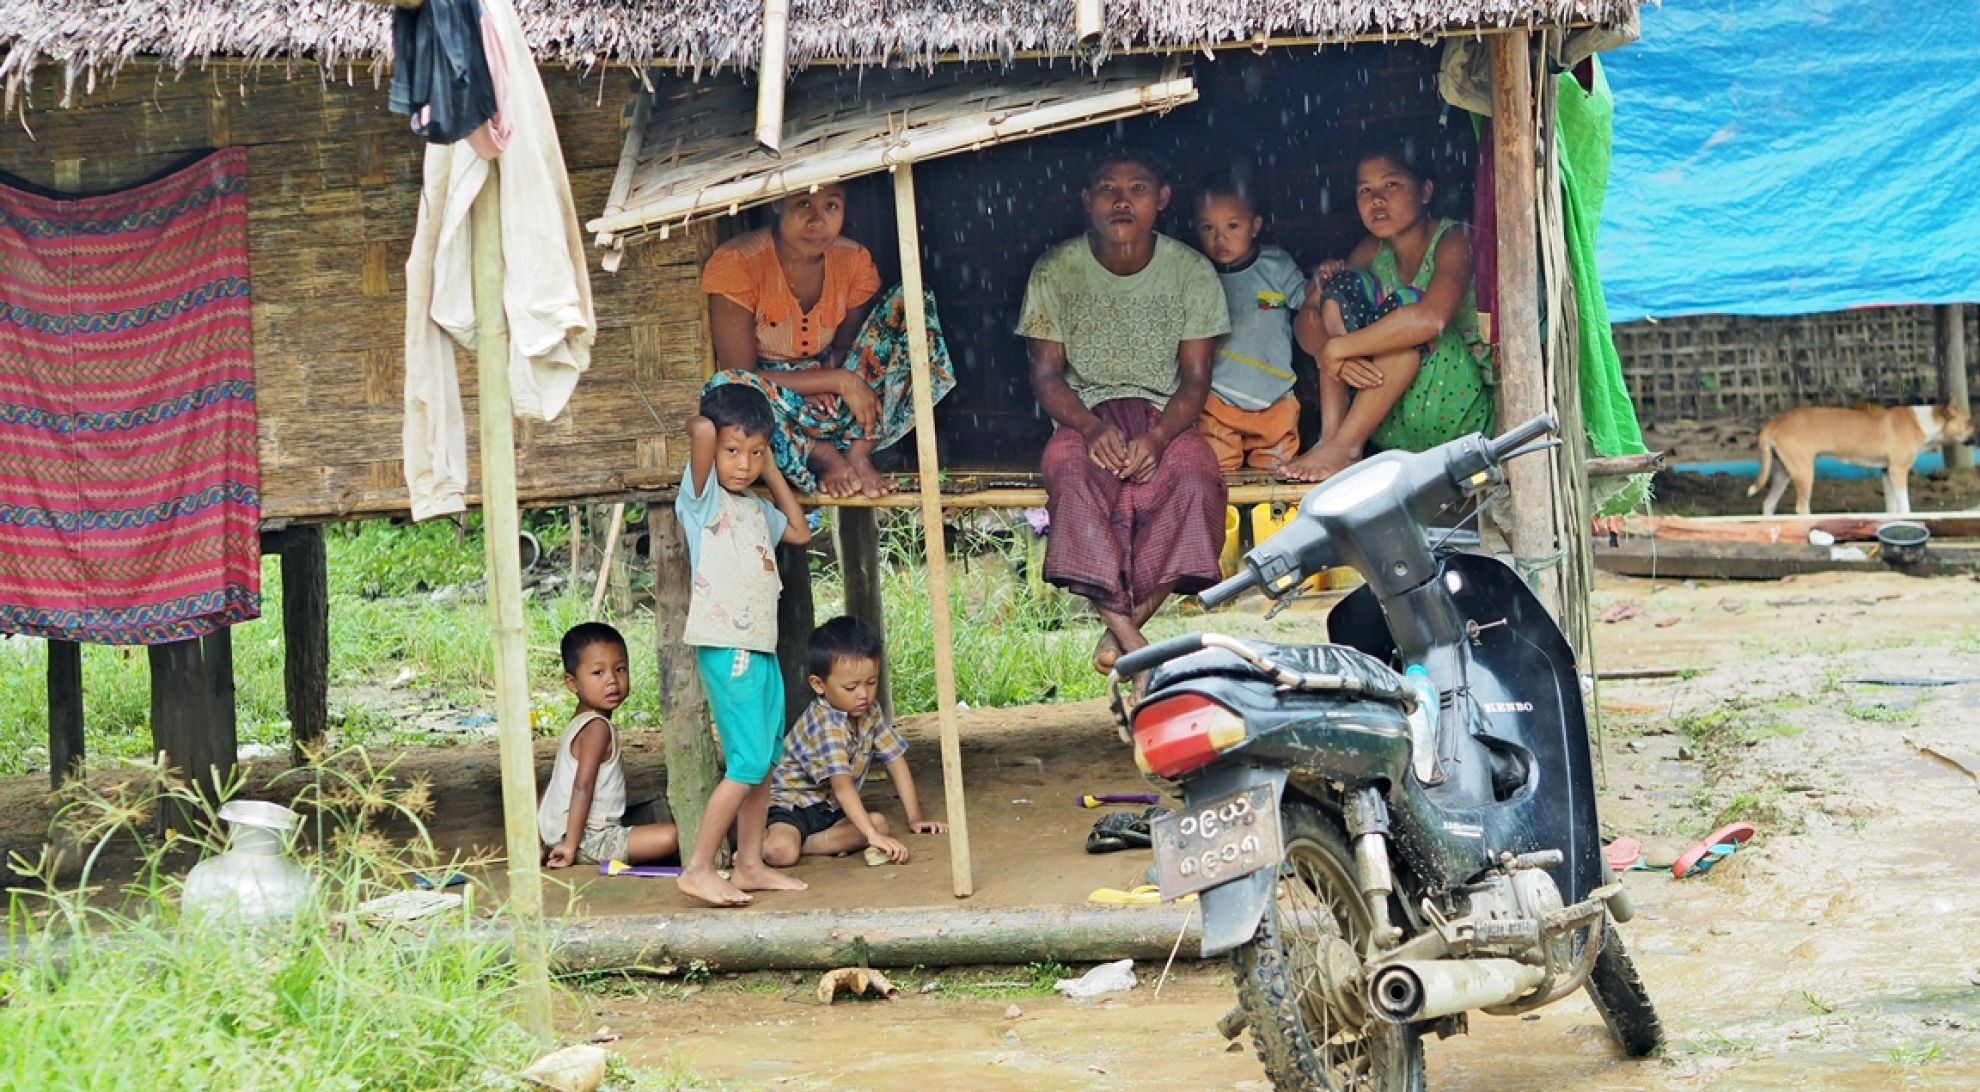 Latest News Strengthening healthcare for remote migrant communities in myanmar